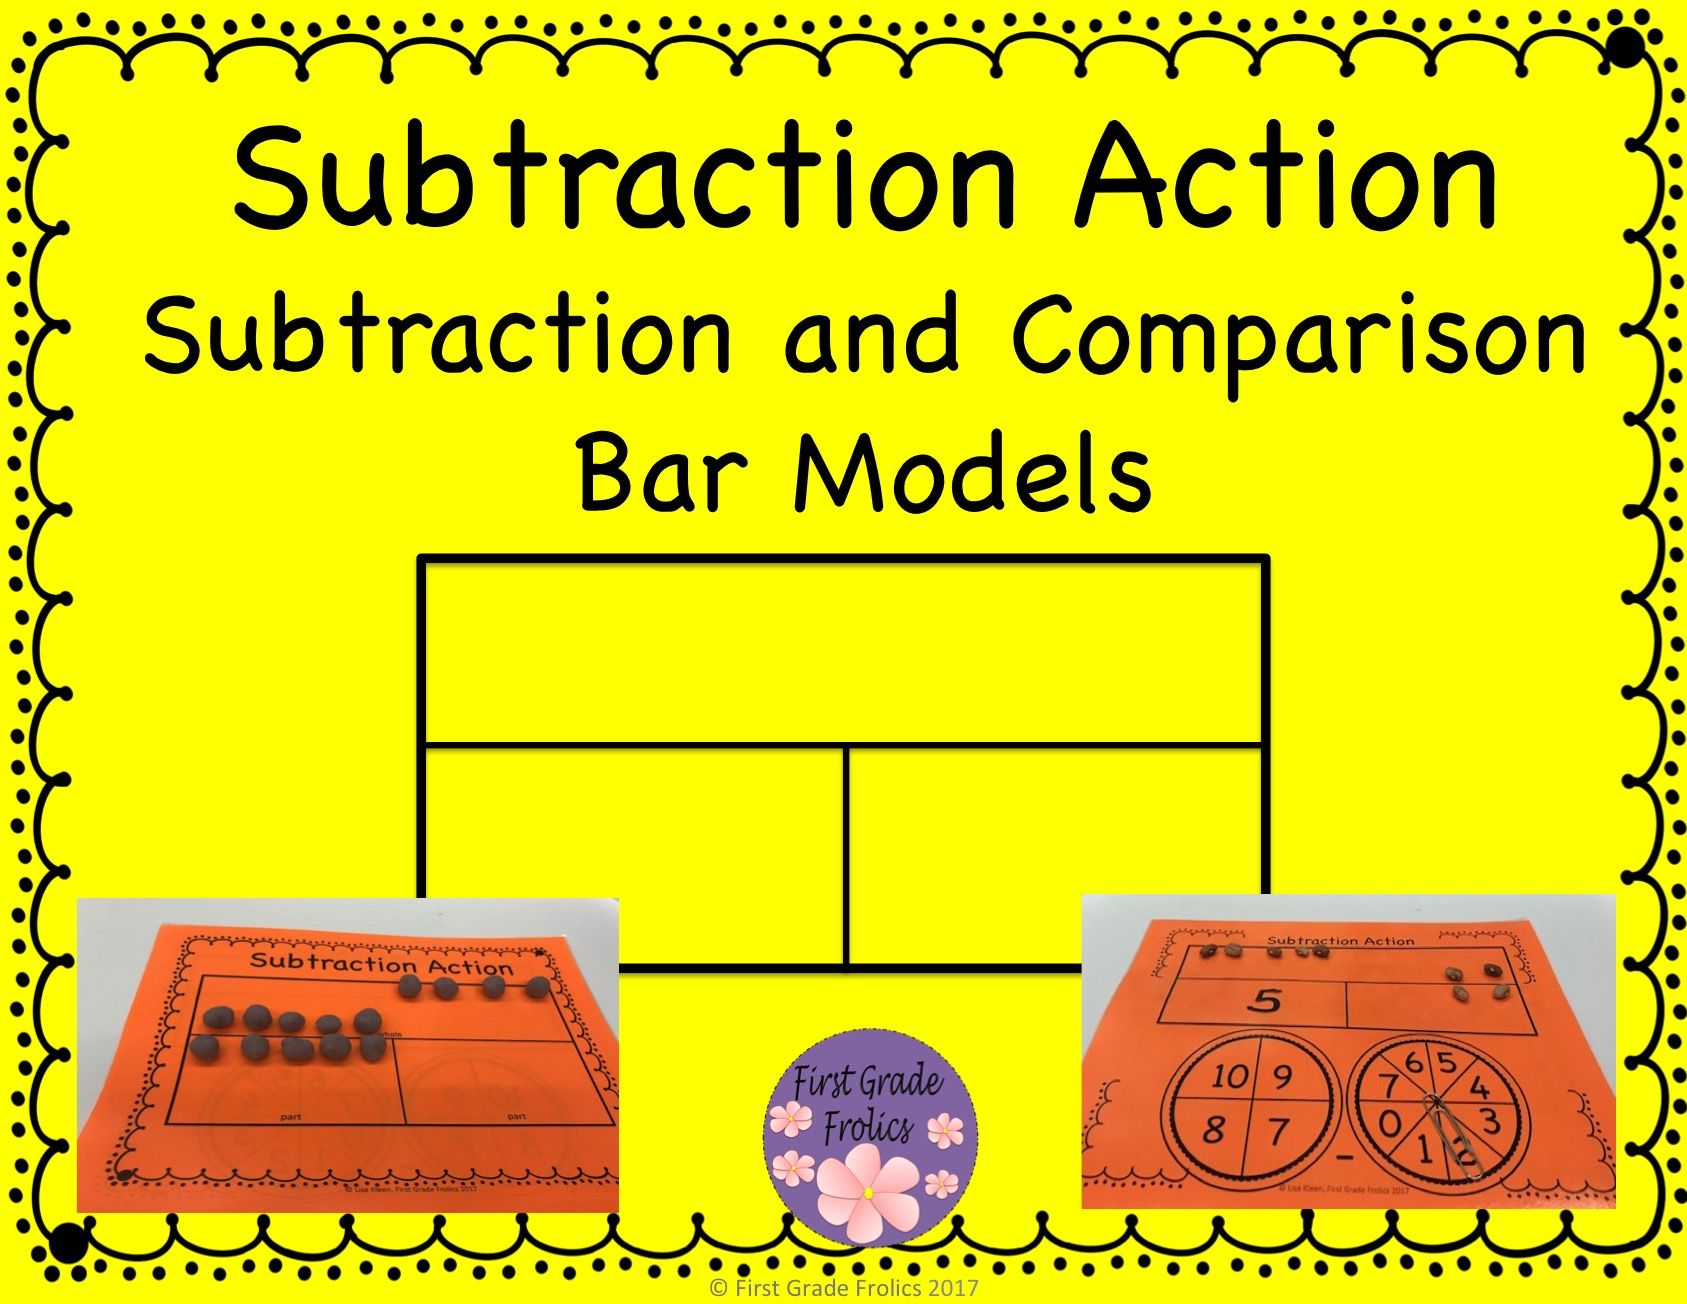 Subtraction Action Bar Models from First Grade Frolics   Subtraction [ 1304 x 1687 Pixel ]